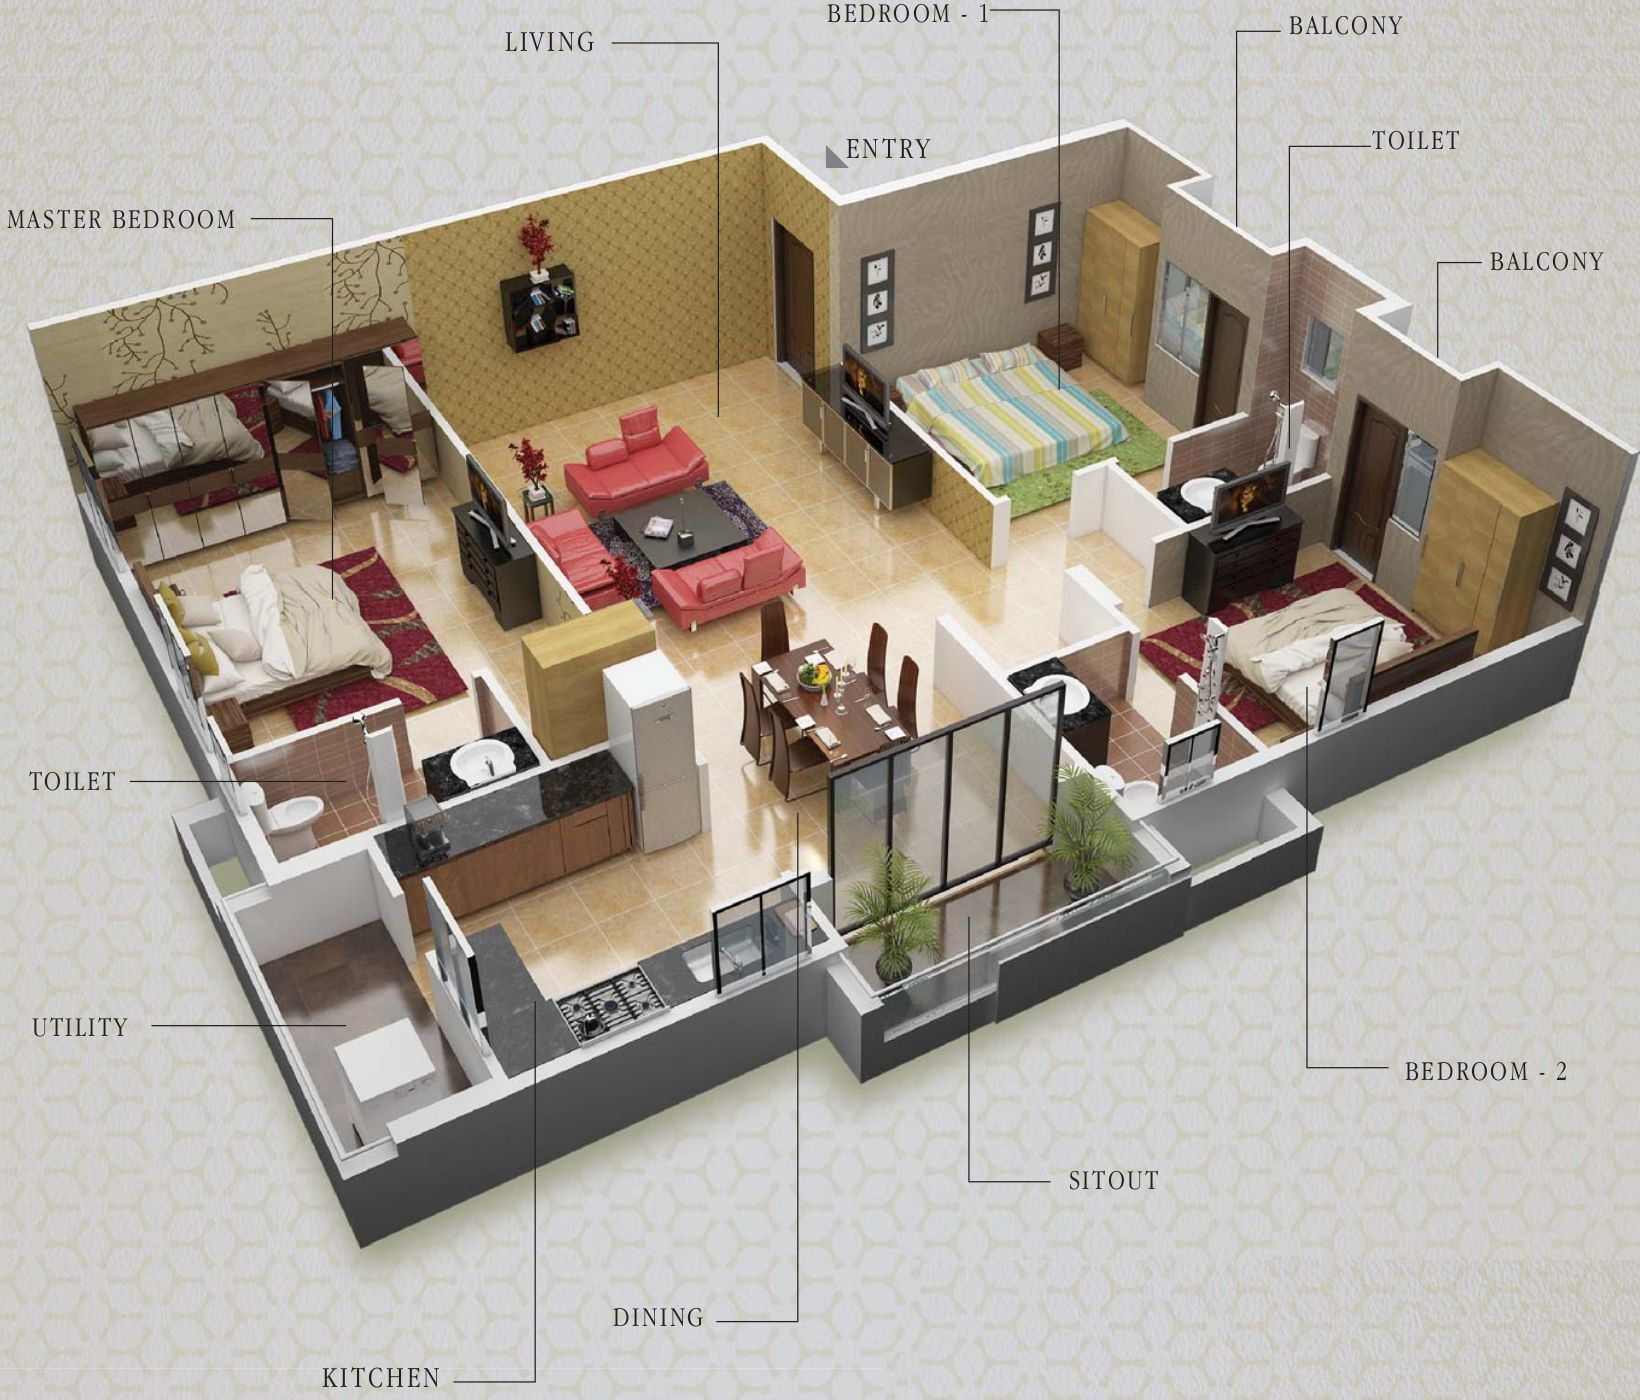 Dharma construction residency floor plan 3bhk 3t 1 795 for 1 bhk living room interior